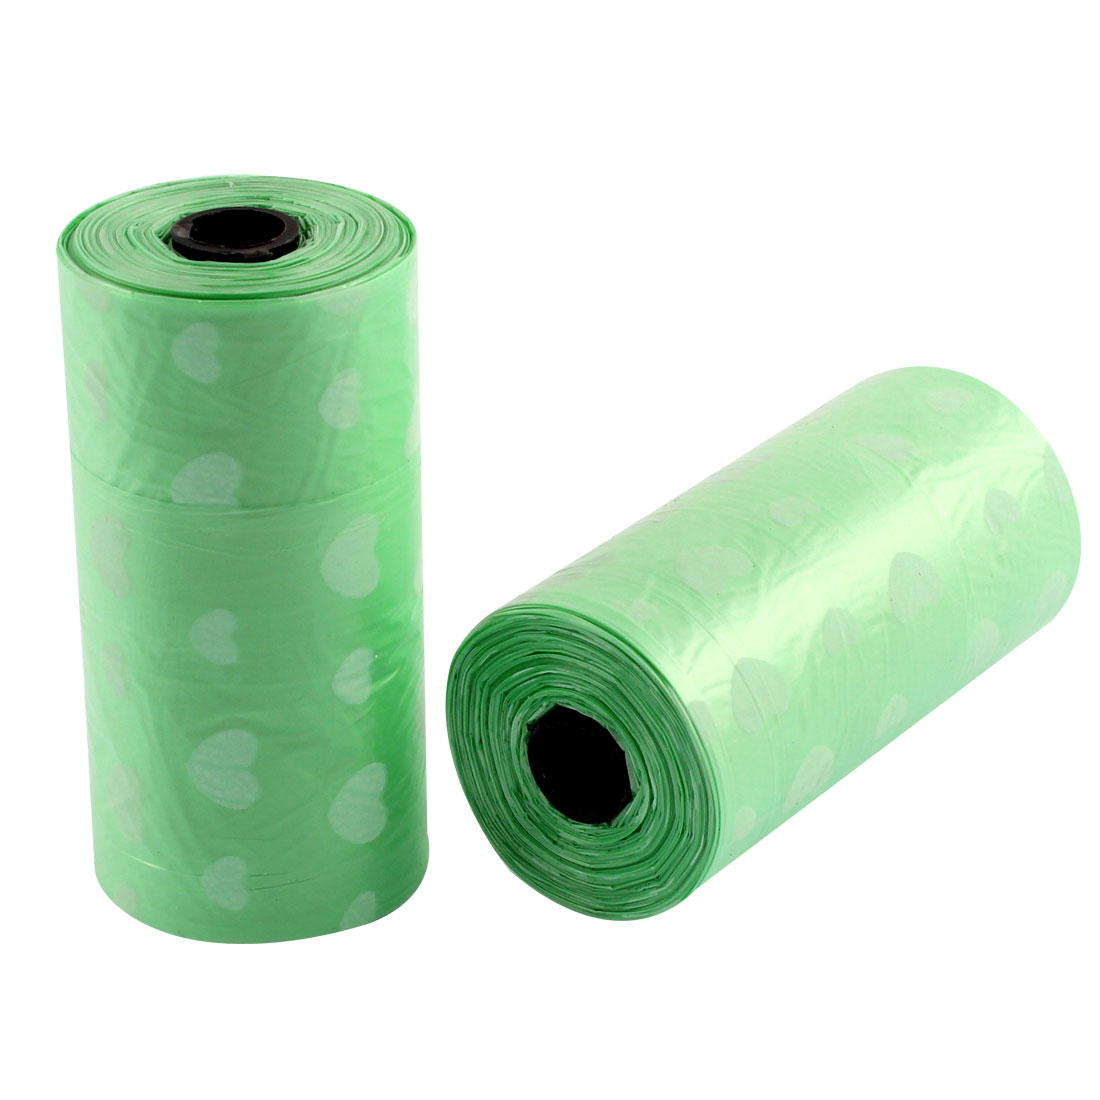 2PCS Auto Car Disposable Garbage Trash Waste Bag Roll Green 30cm x 20cm